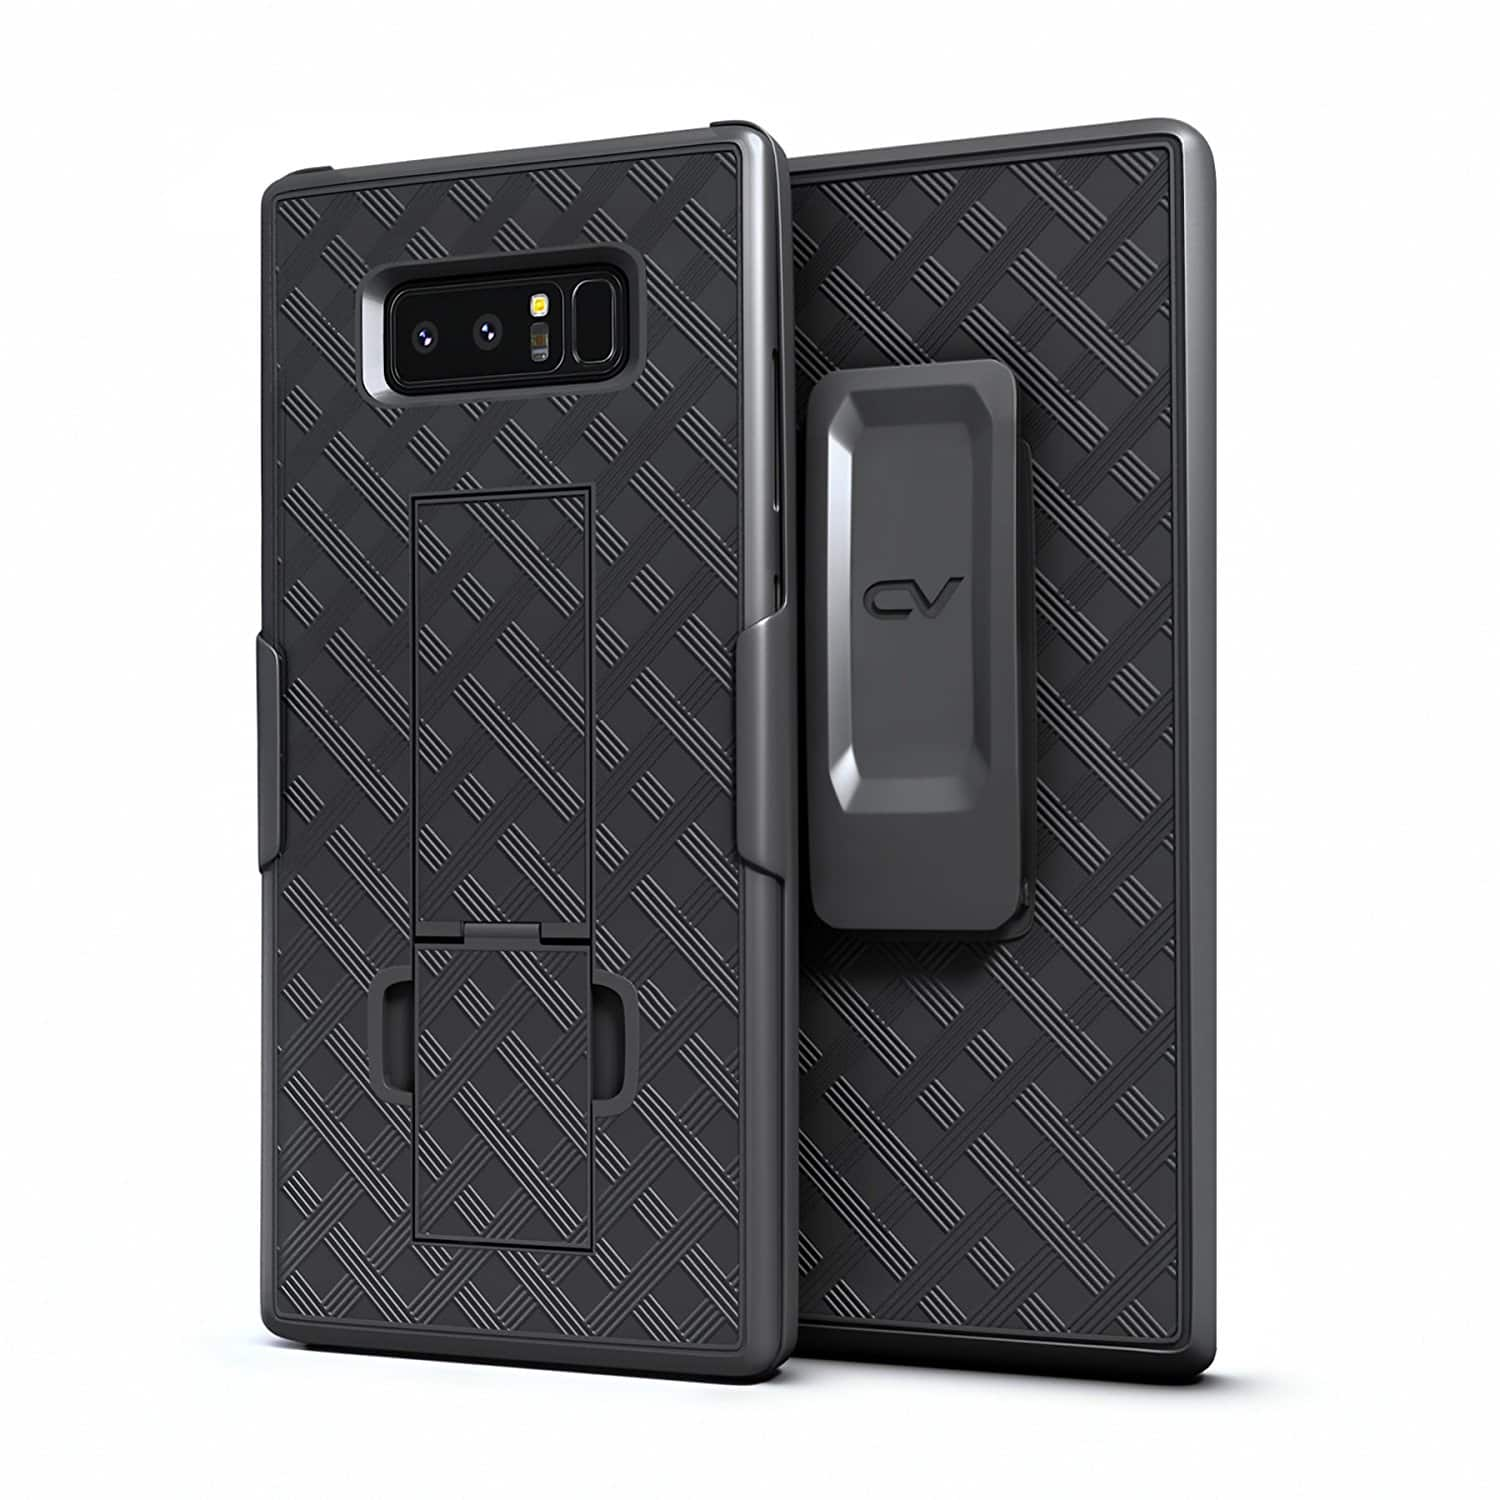 Samsung Galaxy Note 8 Case Case Built in Kickstand with Rotating Holster Belt  for $ 3.30 AC+FS With Prime @ Amazon